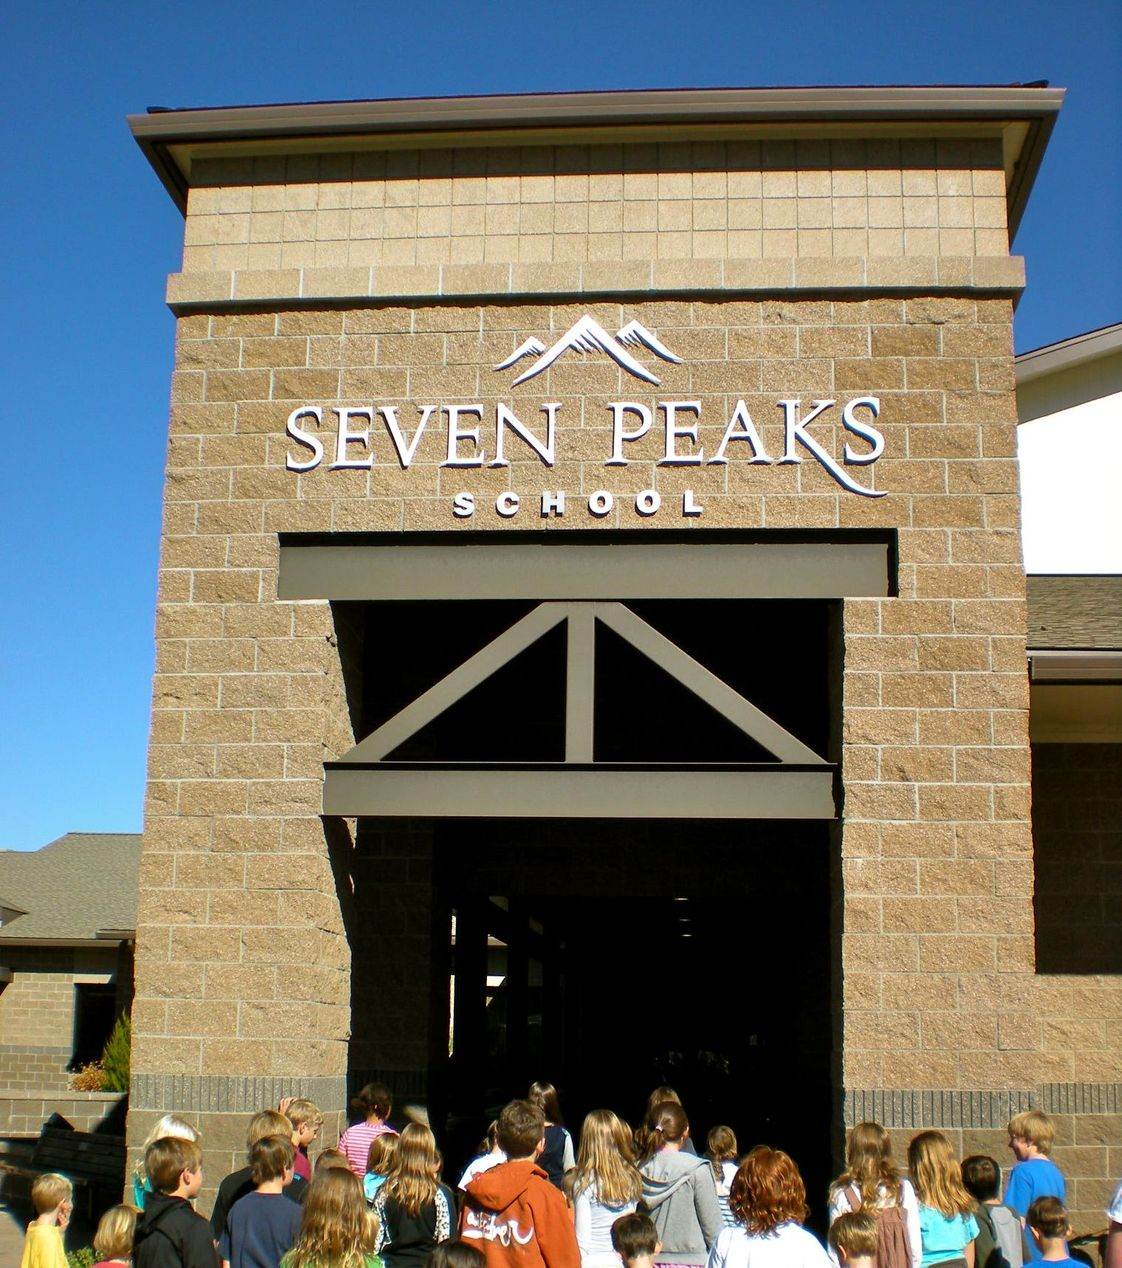 Seven Peaks School Photo - Seven Peaks is proud to be an MYP (Middle Years Programme) IB school. The MYP curriculum framework comprises eight subject groups, providing a broad and balanced education for early adolescents. Students take the core courses of language and literature, individuals and societies, mathematics, sciences, physical and health education, language acquisition, arts, and design.